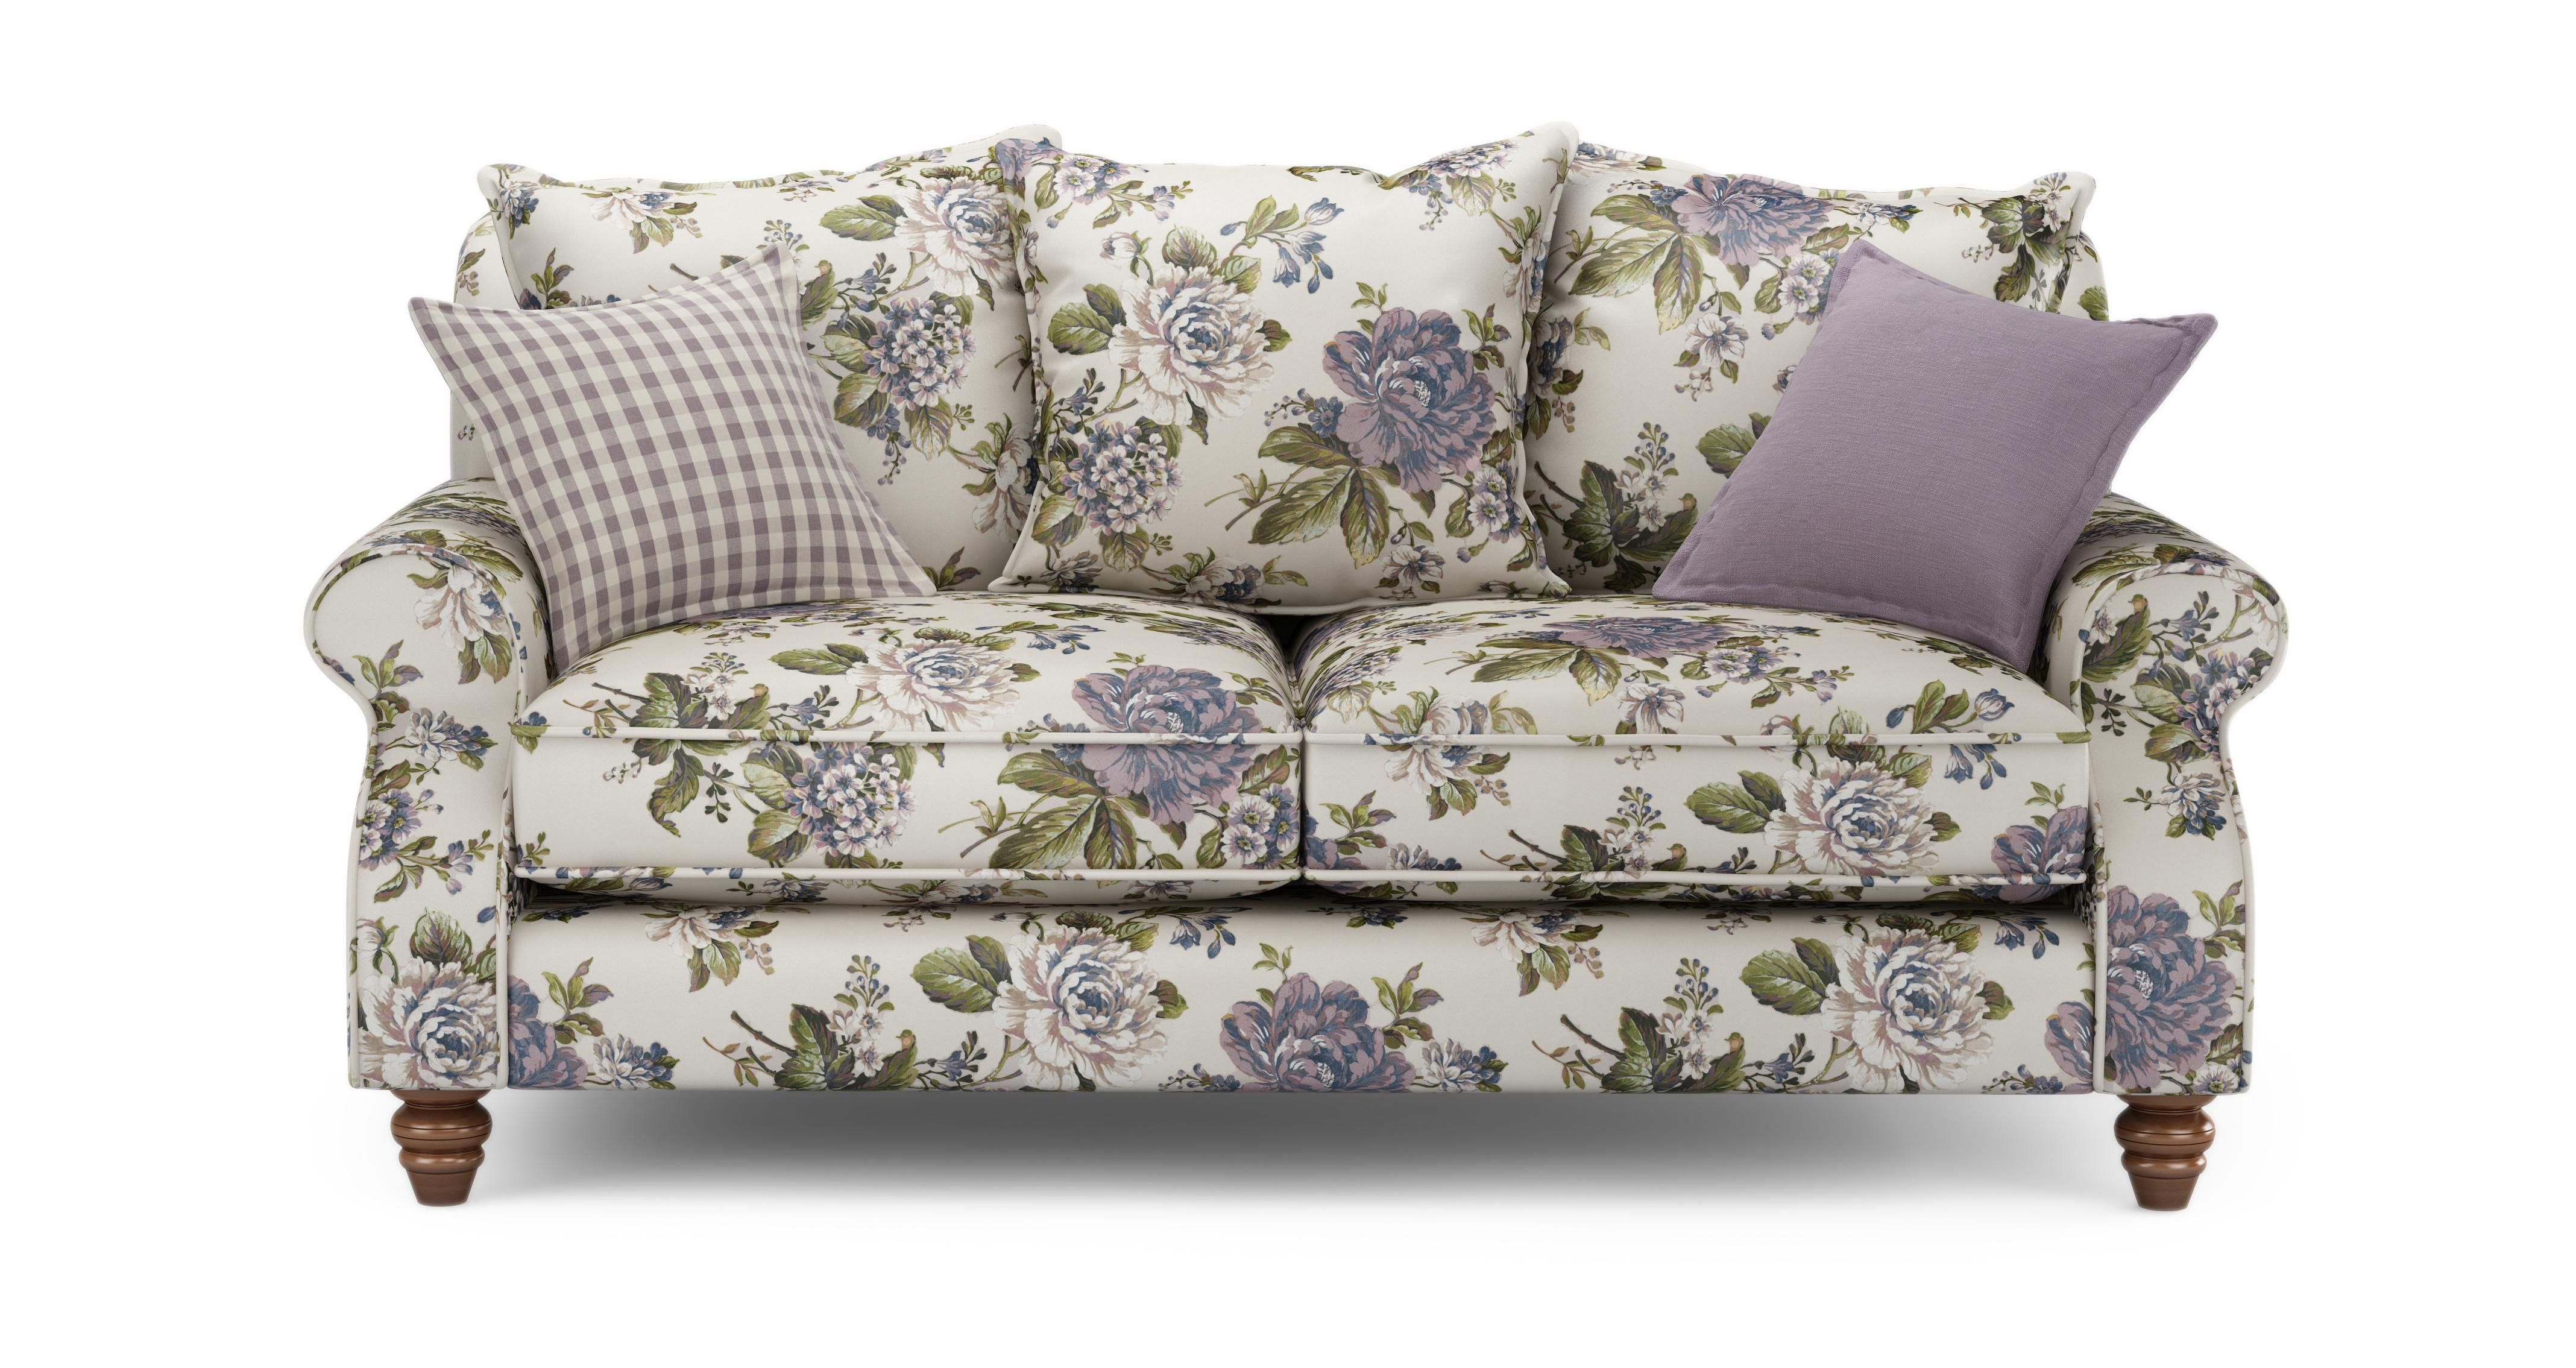 Things To Consider Before Choosing The Floral Sofa And Loveseat In